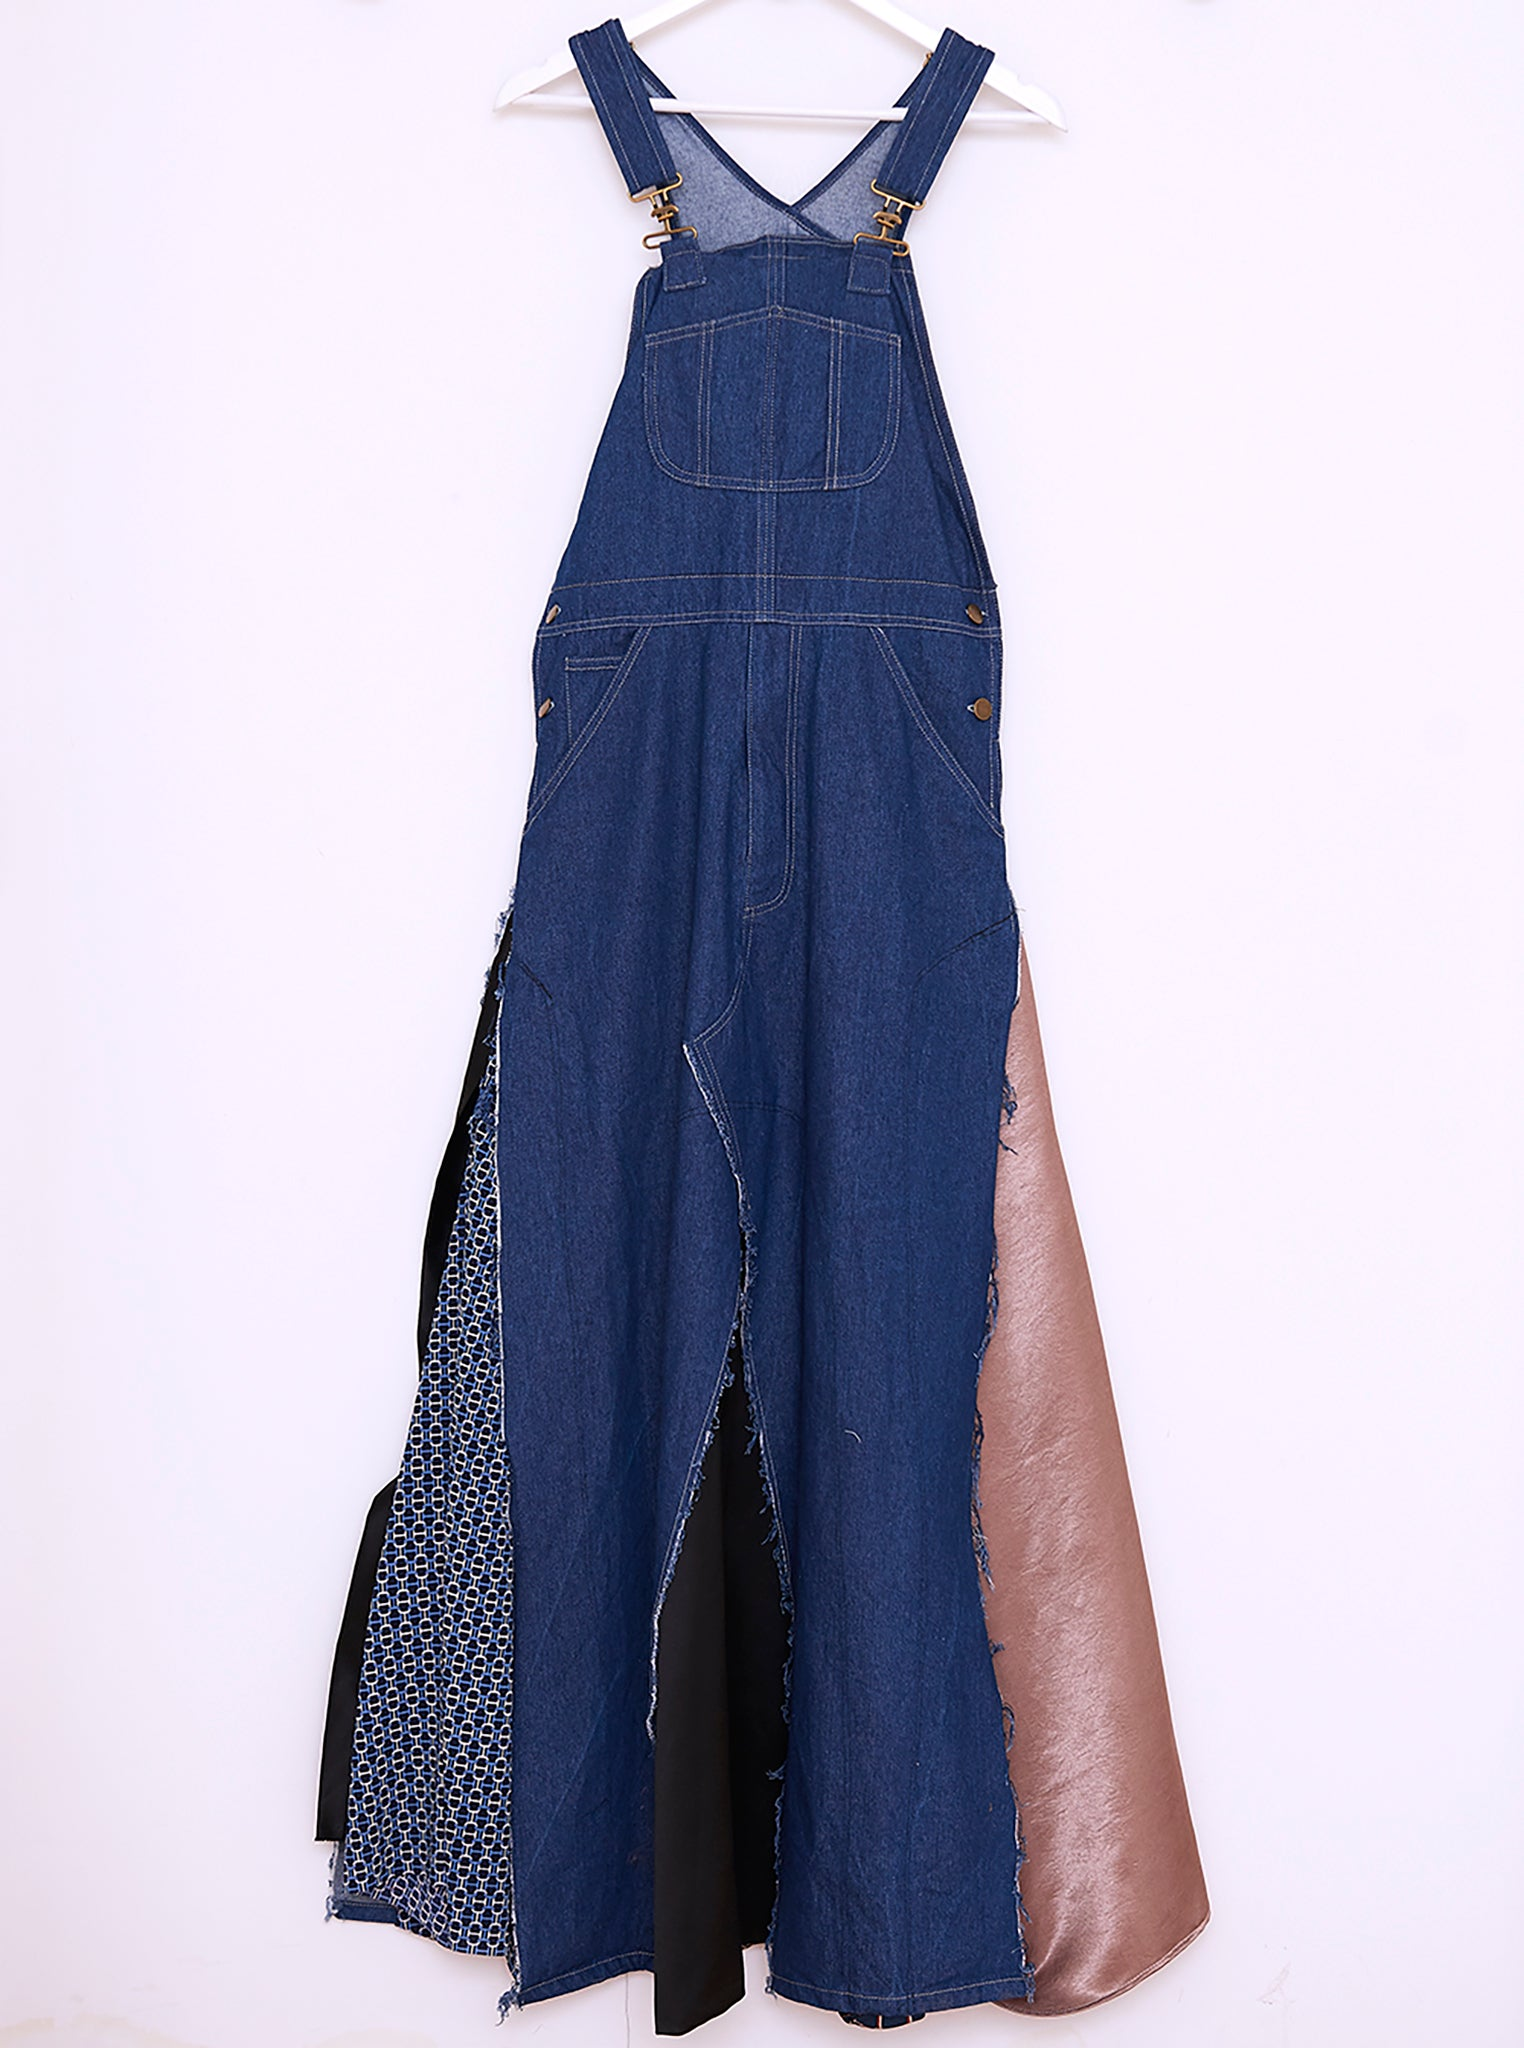 Vinti Andrews Dungarees Dress